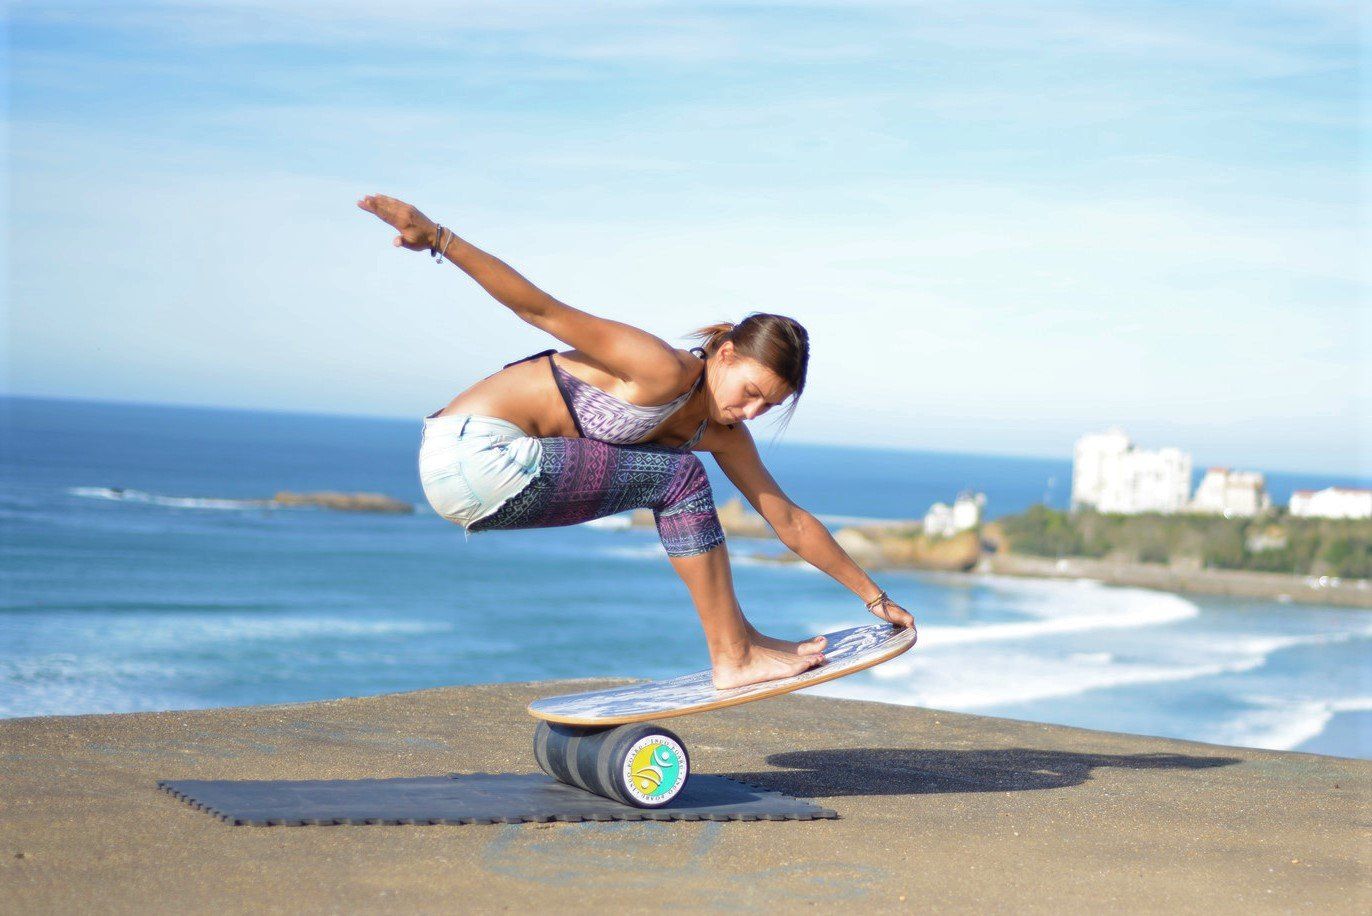 """INDO BOARD Original Balance Board with 6.5"""" Roller and 30"""" X 18"""" Non-Slip Deck – Wave Design by INDO BOARD (Image #8)"""